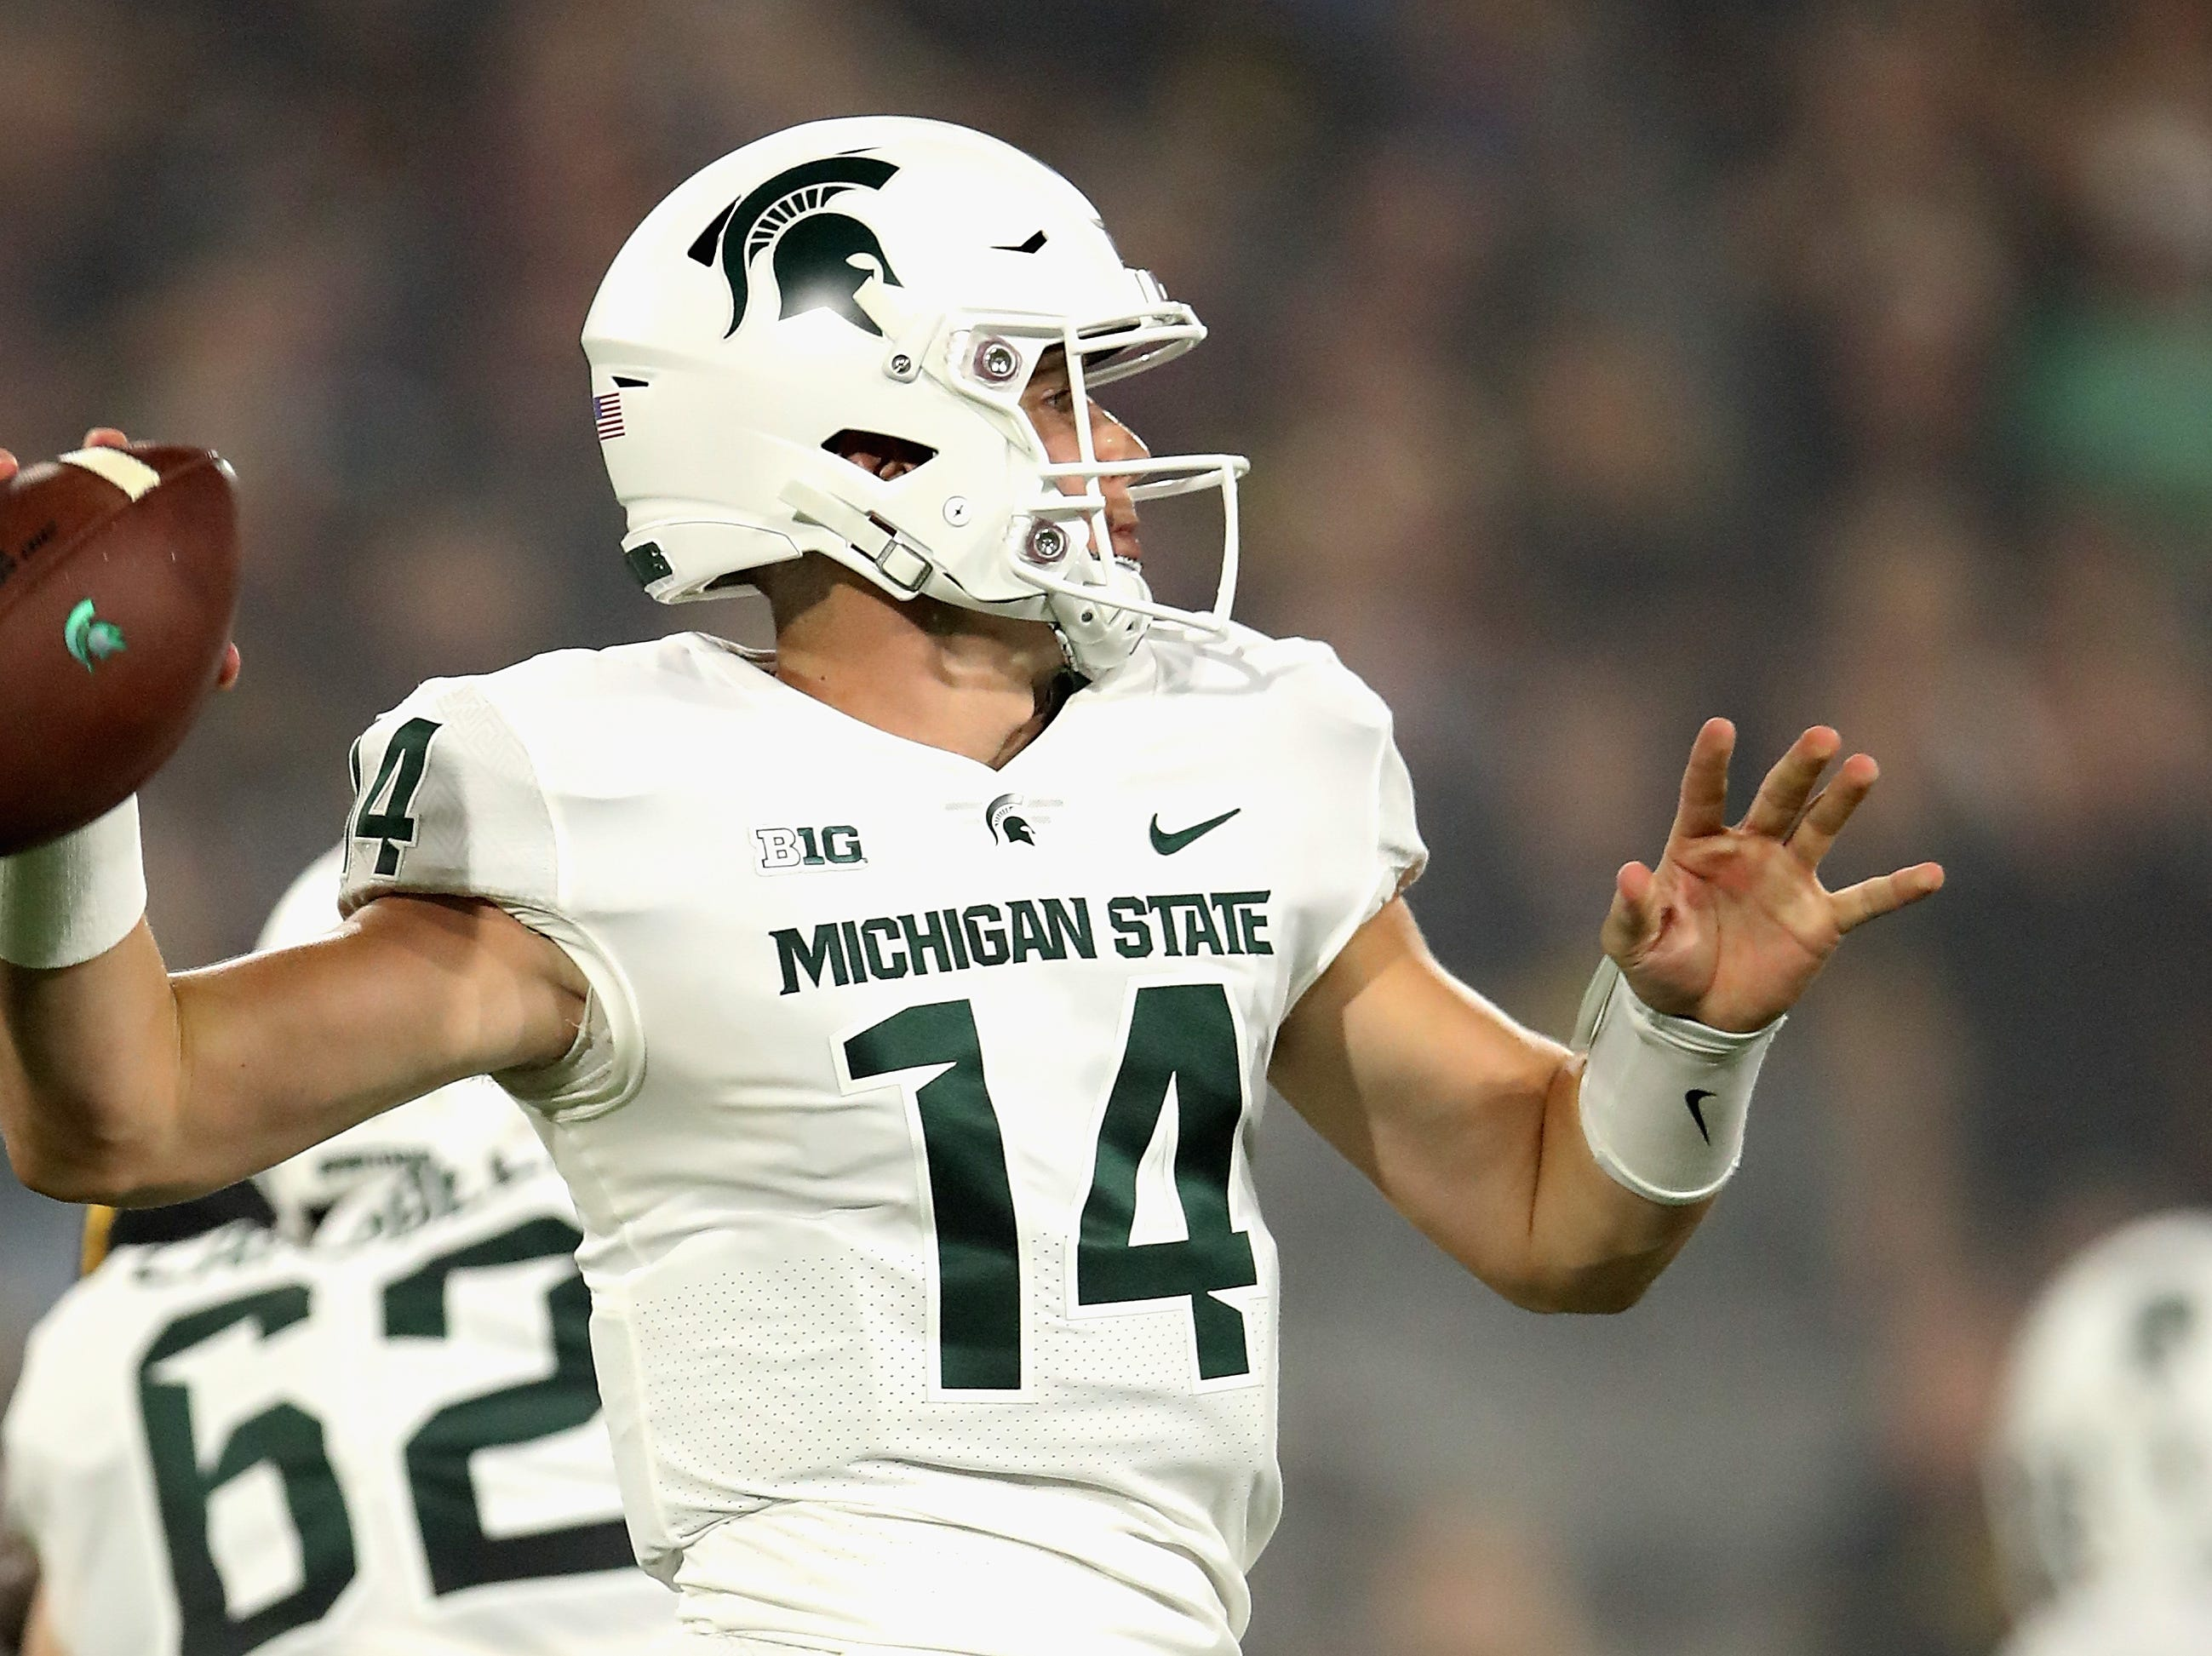 TEMPE, AZ - SEPTEMBER 08:  Quarterback Brian Lewerke #14 of the Michigan State Spartans drops back to pass during the first half of the college football game against the Arizona State Sun Devils at Sun Devil Stadium on September 8, 2018 in Tempe, Arizona.  (Photo by Christian Petersen/Getty Images)